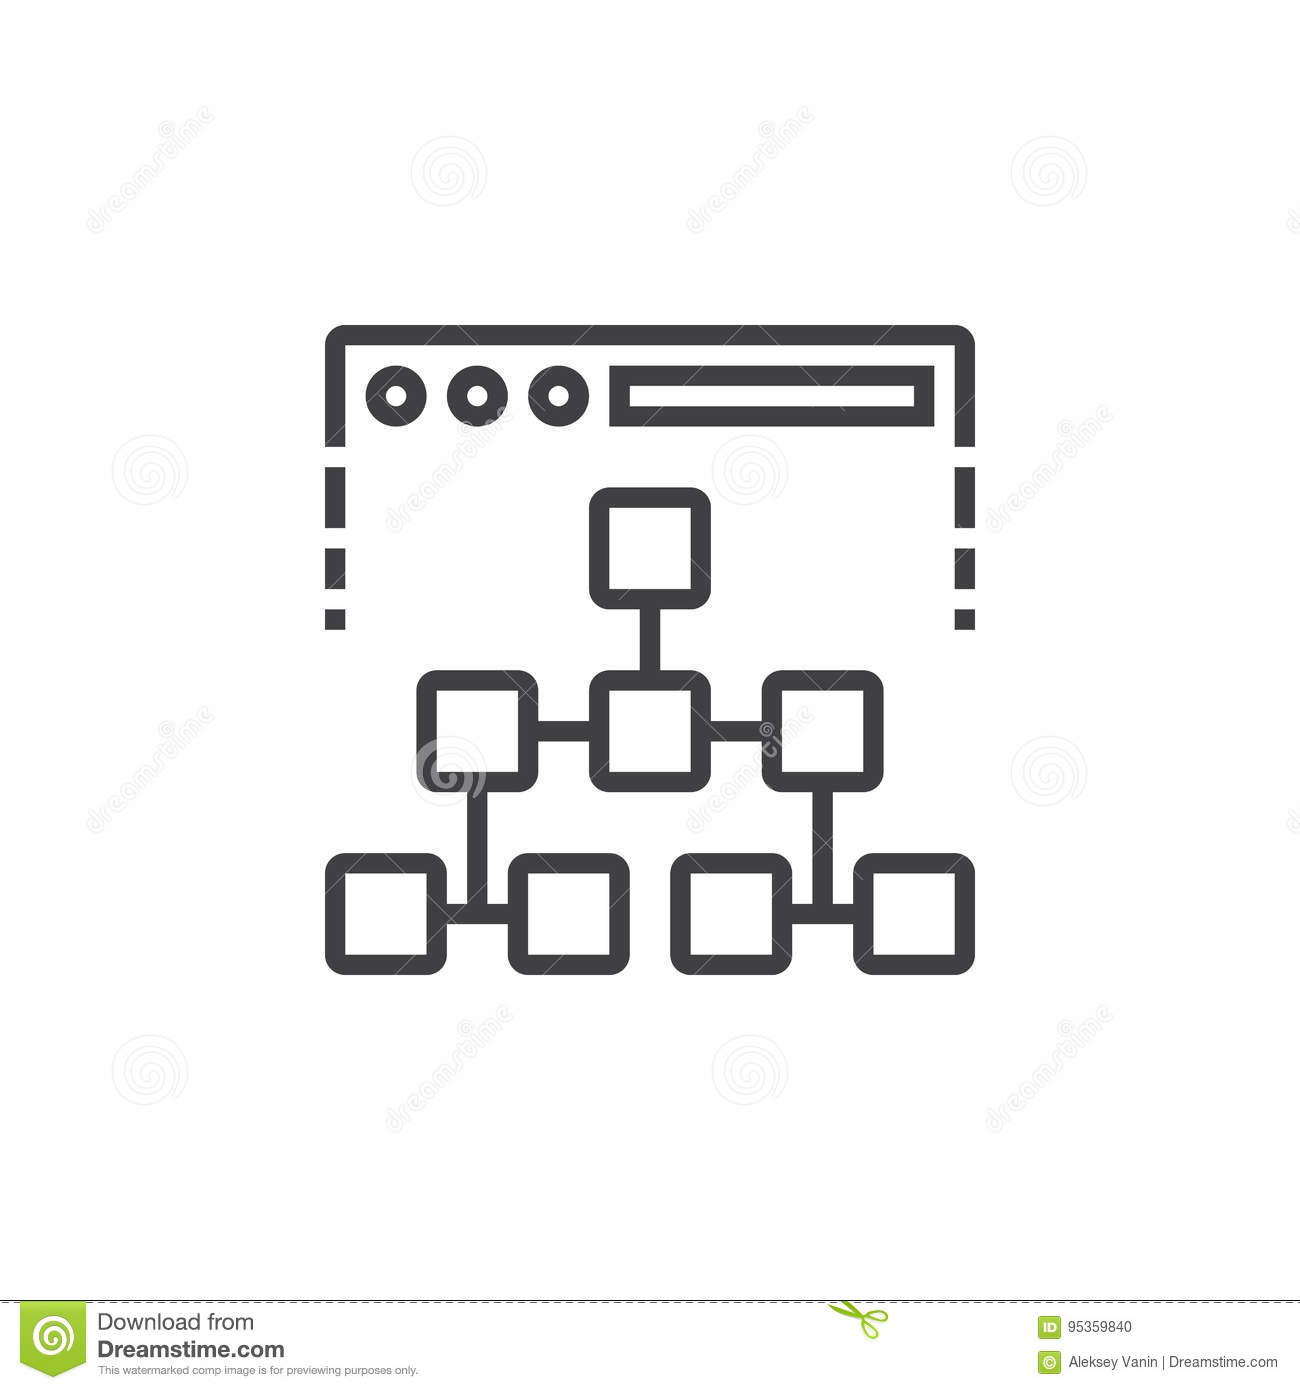 Site map line icon, outline vector sign, linear pictogram isolated on white. logo illustration